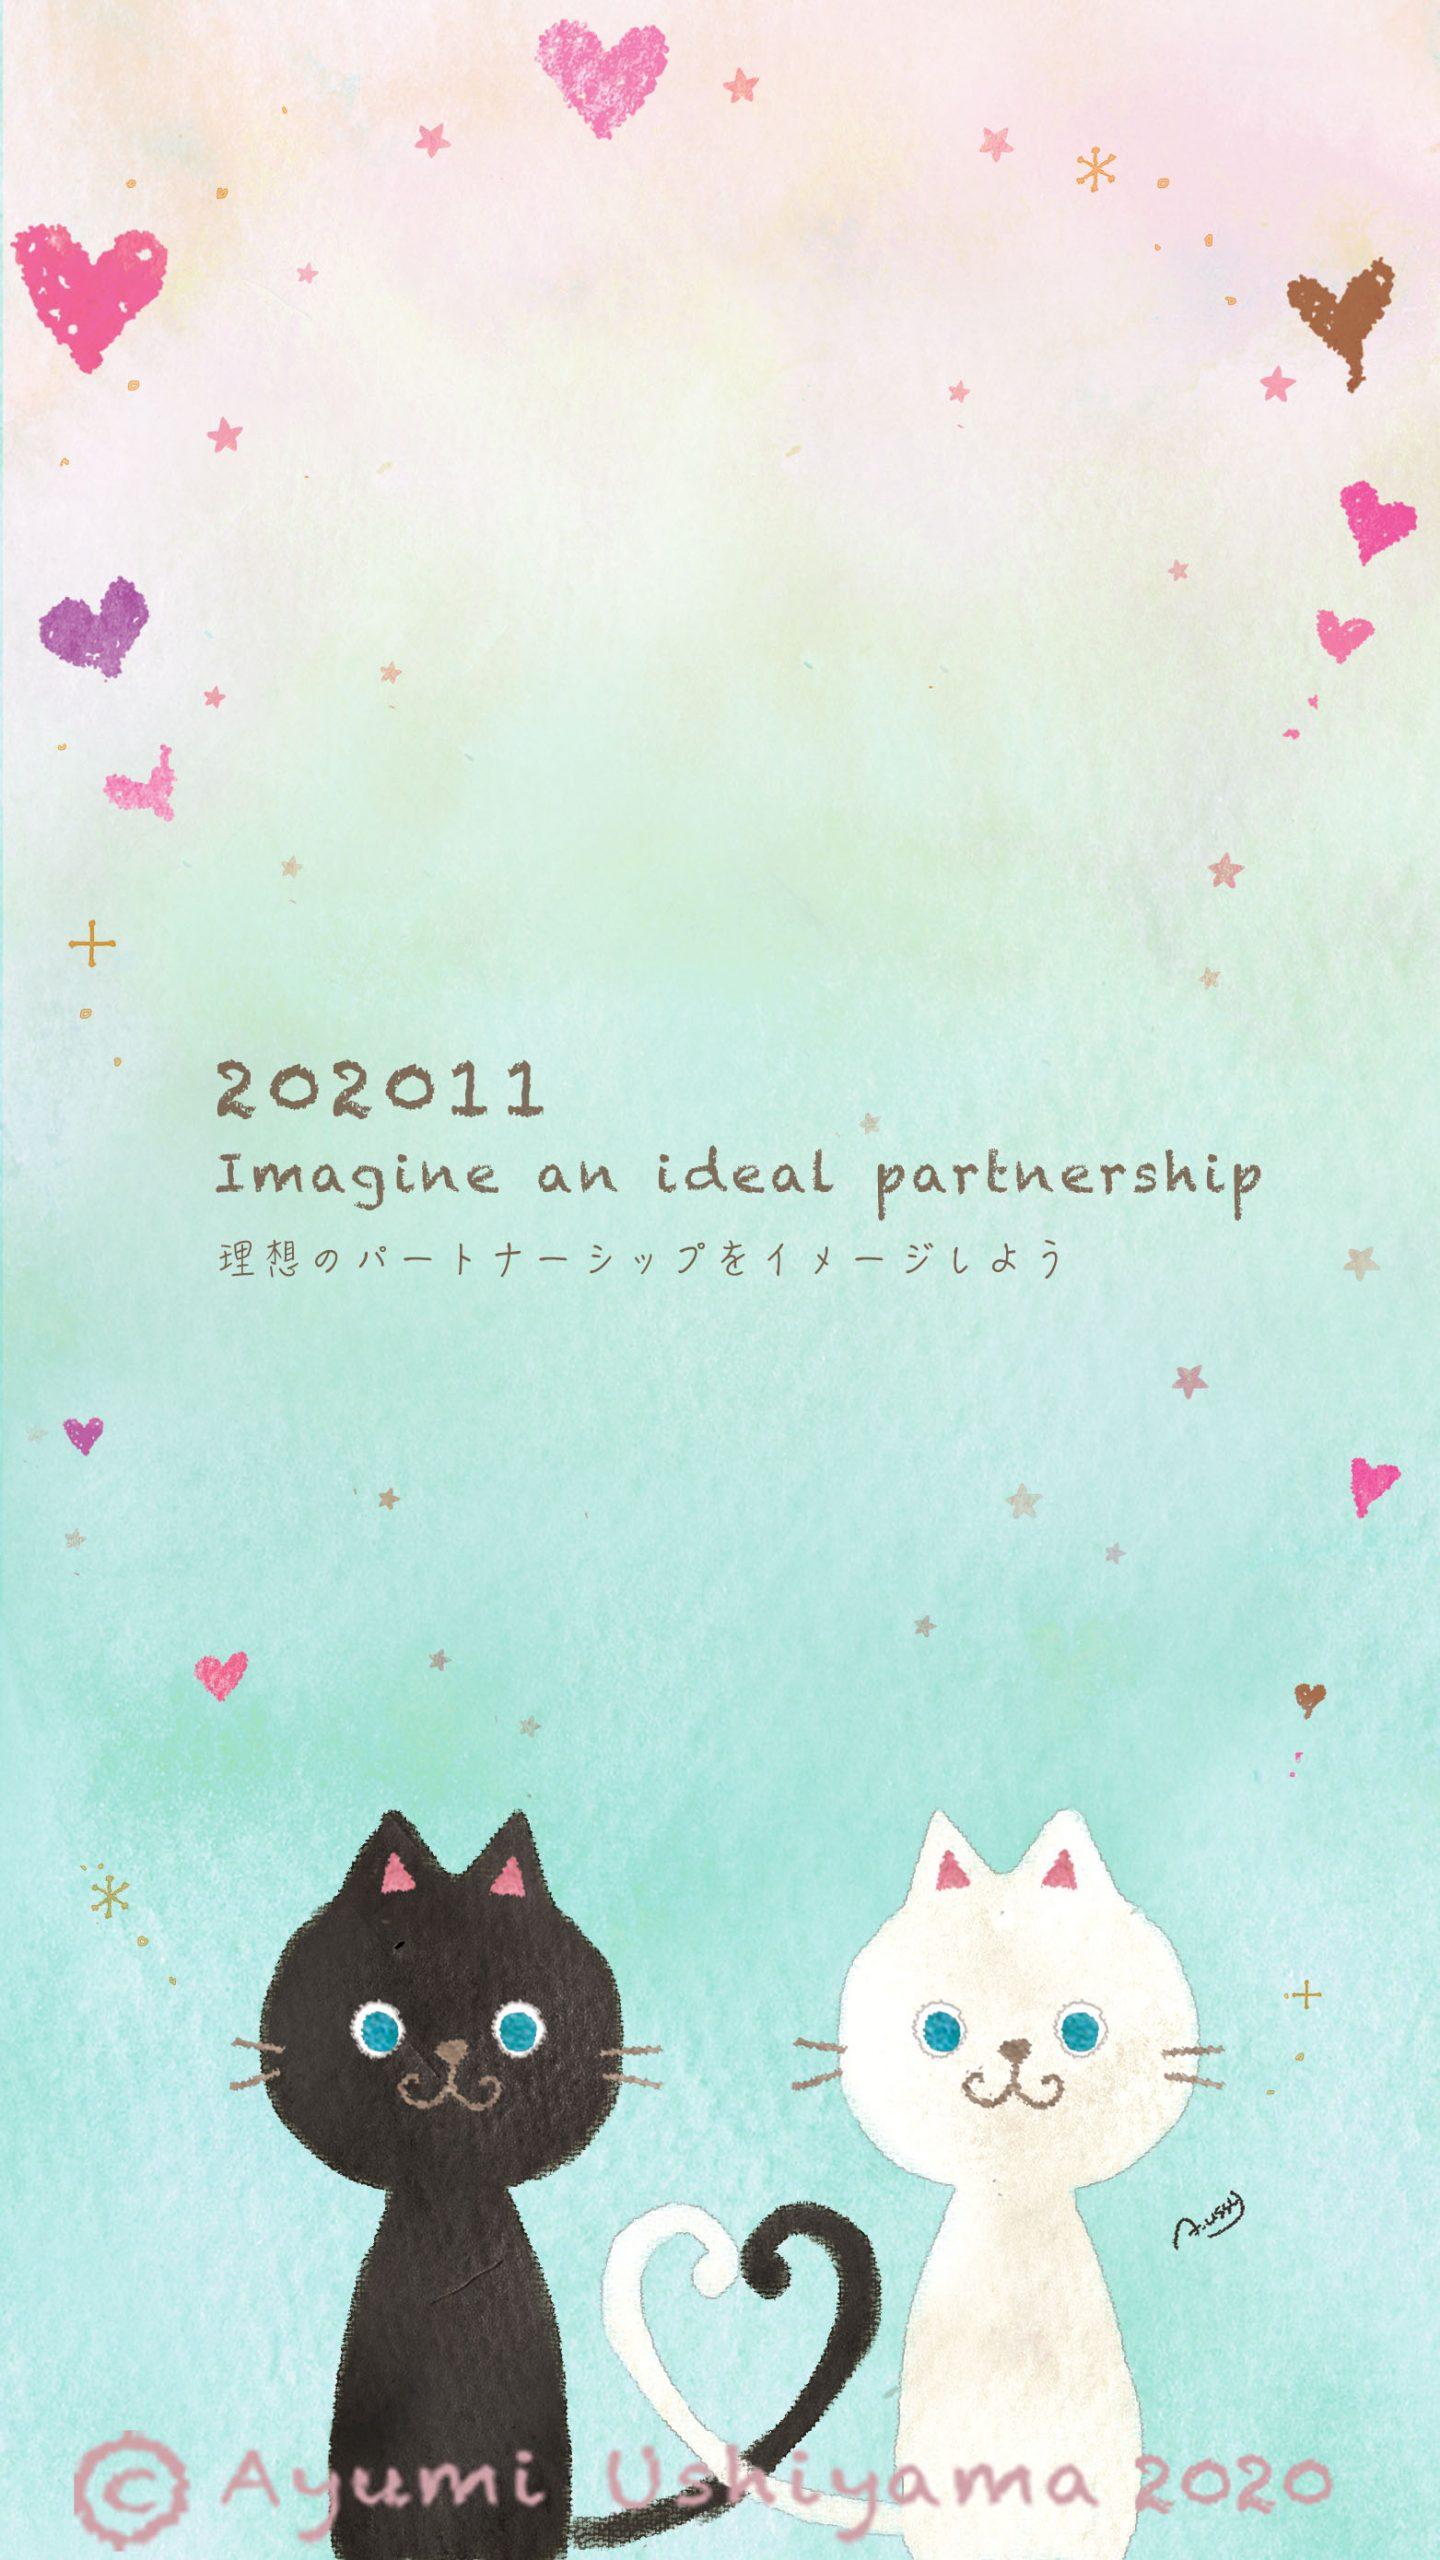 2020.11『Imagine an ideal partnership』